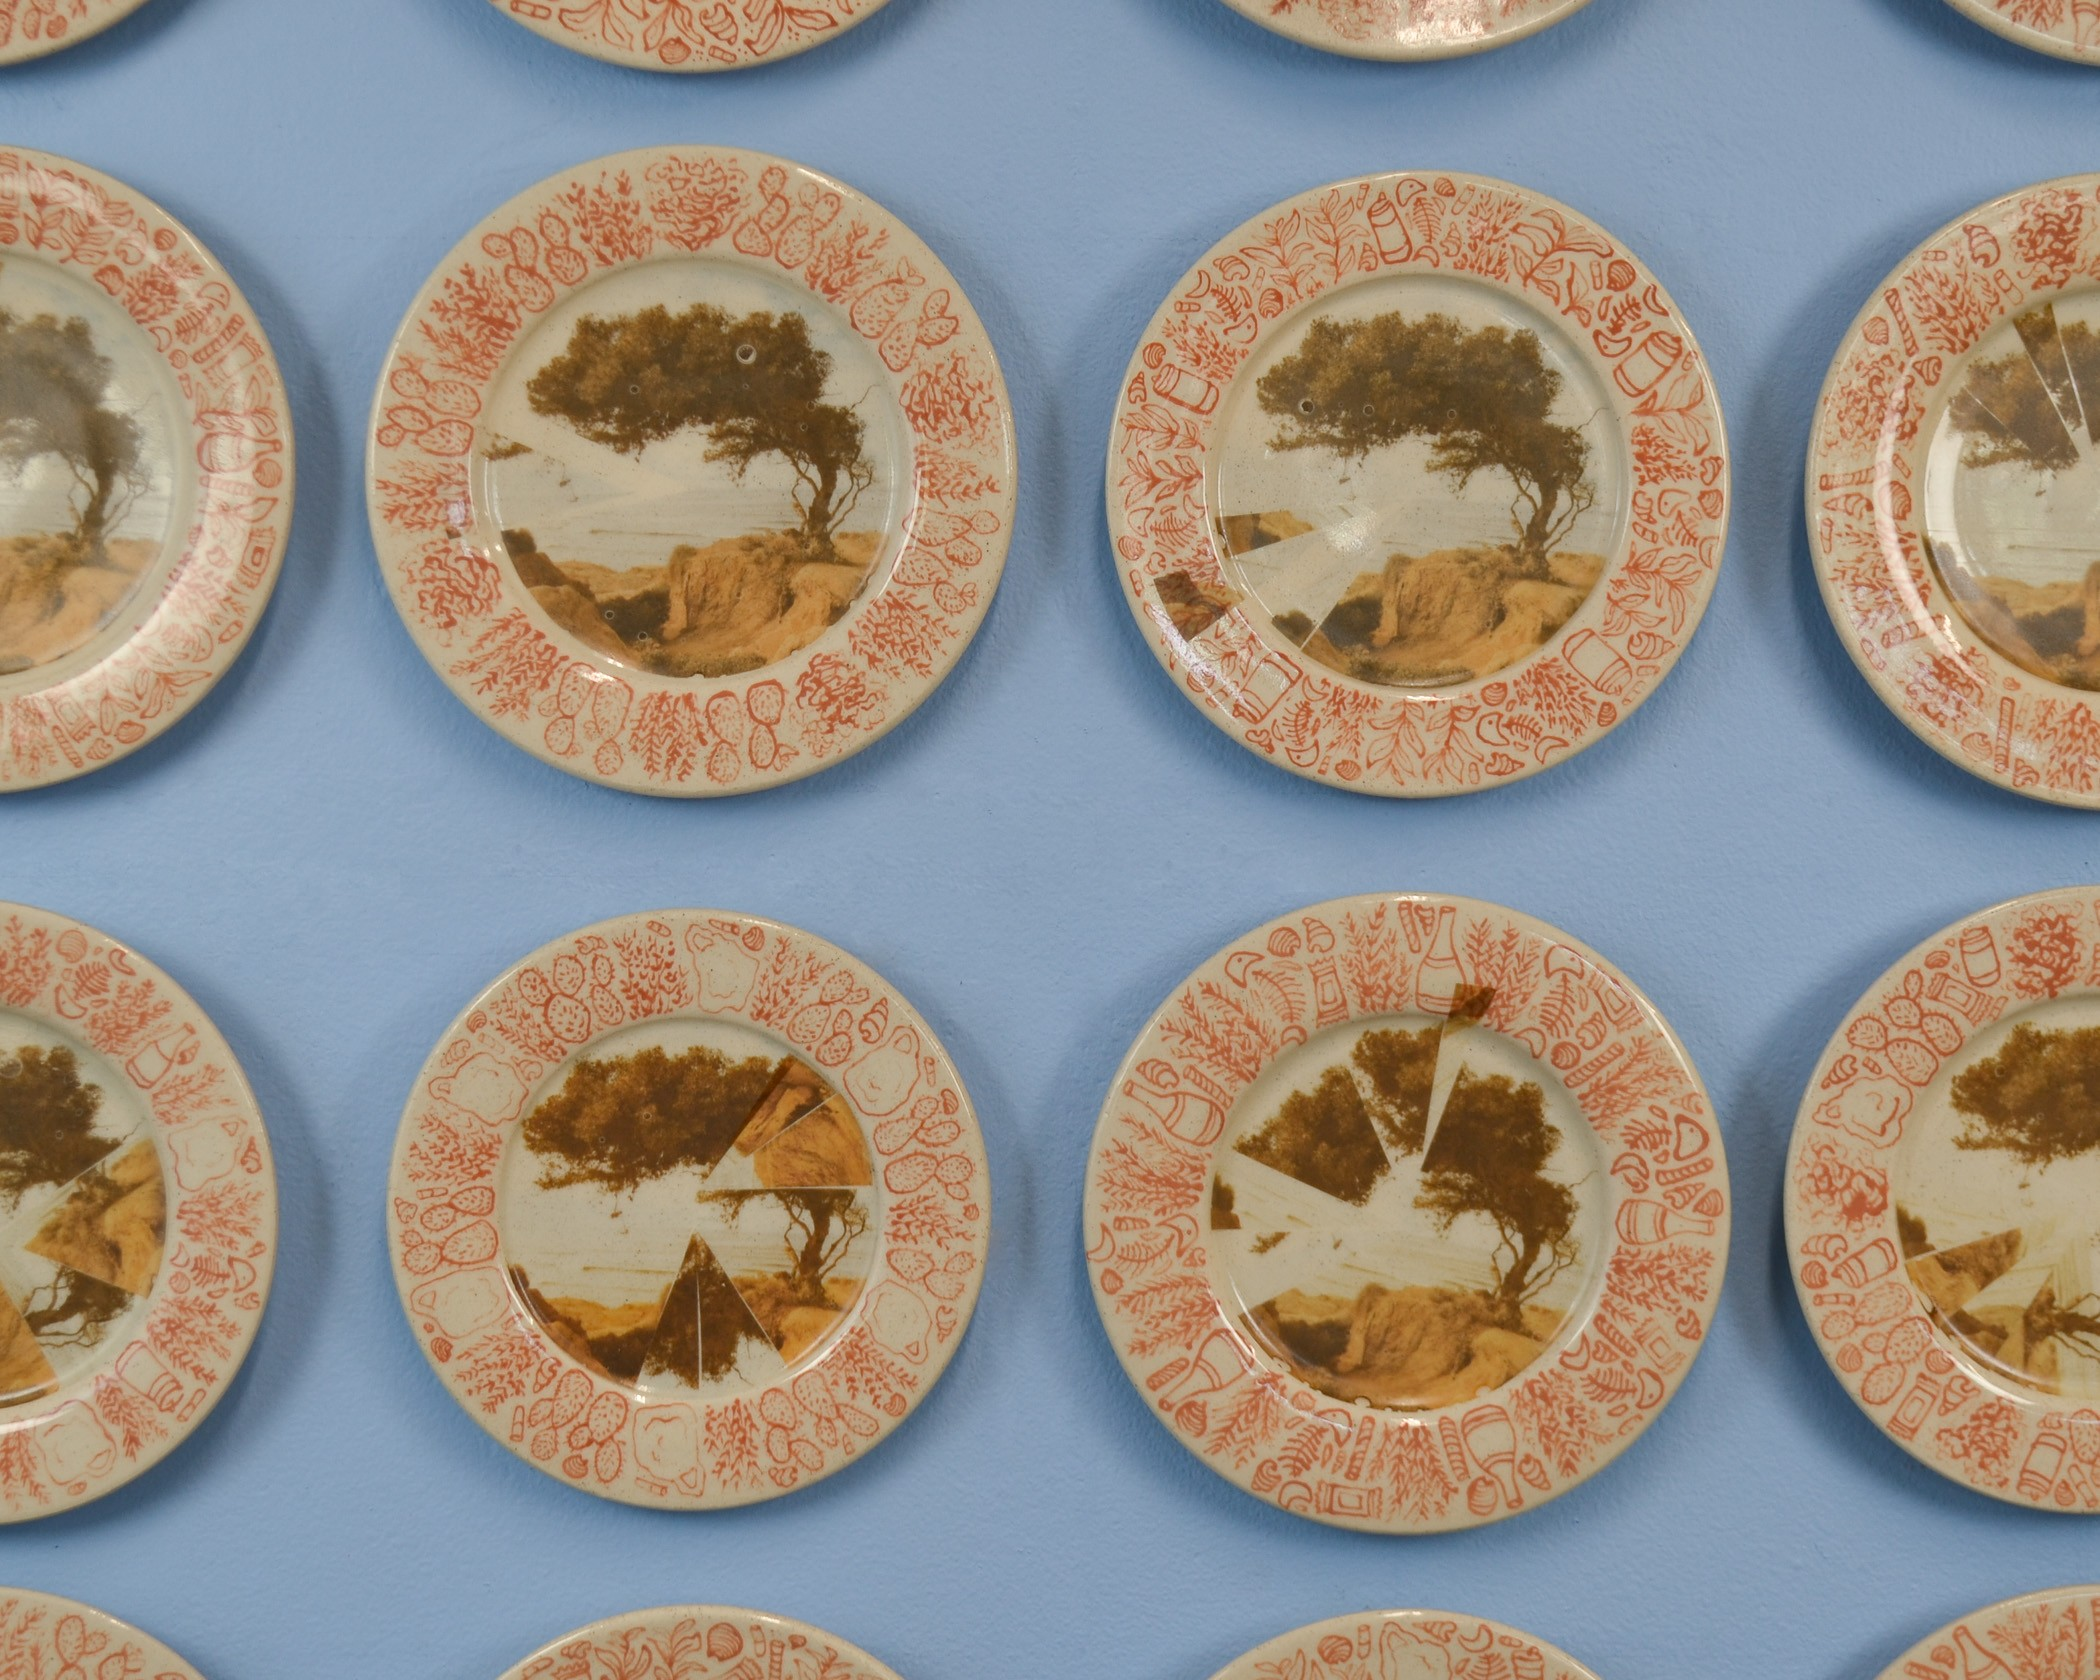 Cropped close up of 8 out of 16 ceramic plates. The plates are hanging on a sky-blue wall. Each plate is about 8 inches in diameter. The center of each plate is decorated with an image of a tree on a cliffside that overlooks the ocean. The image becomes i